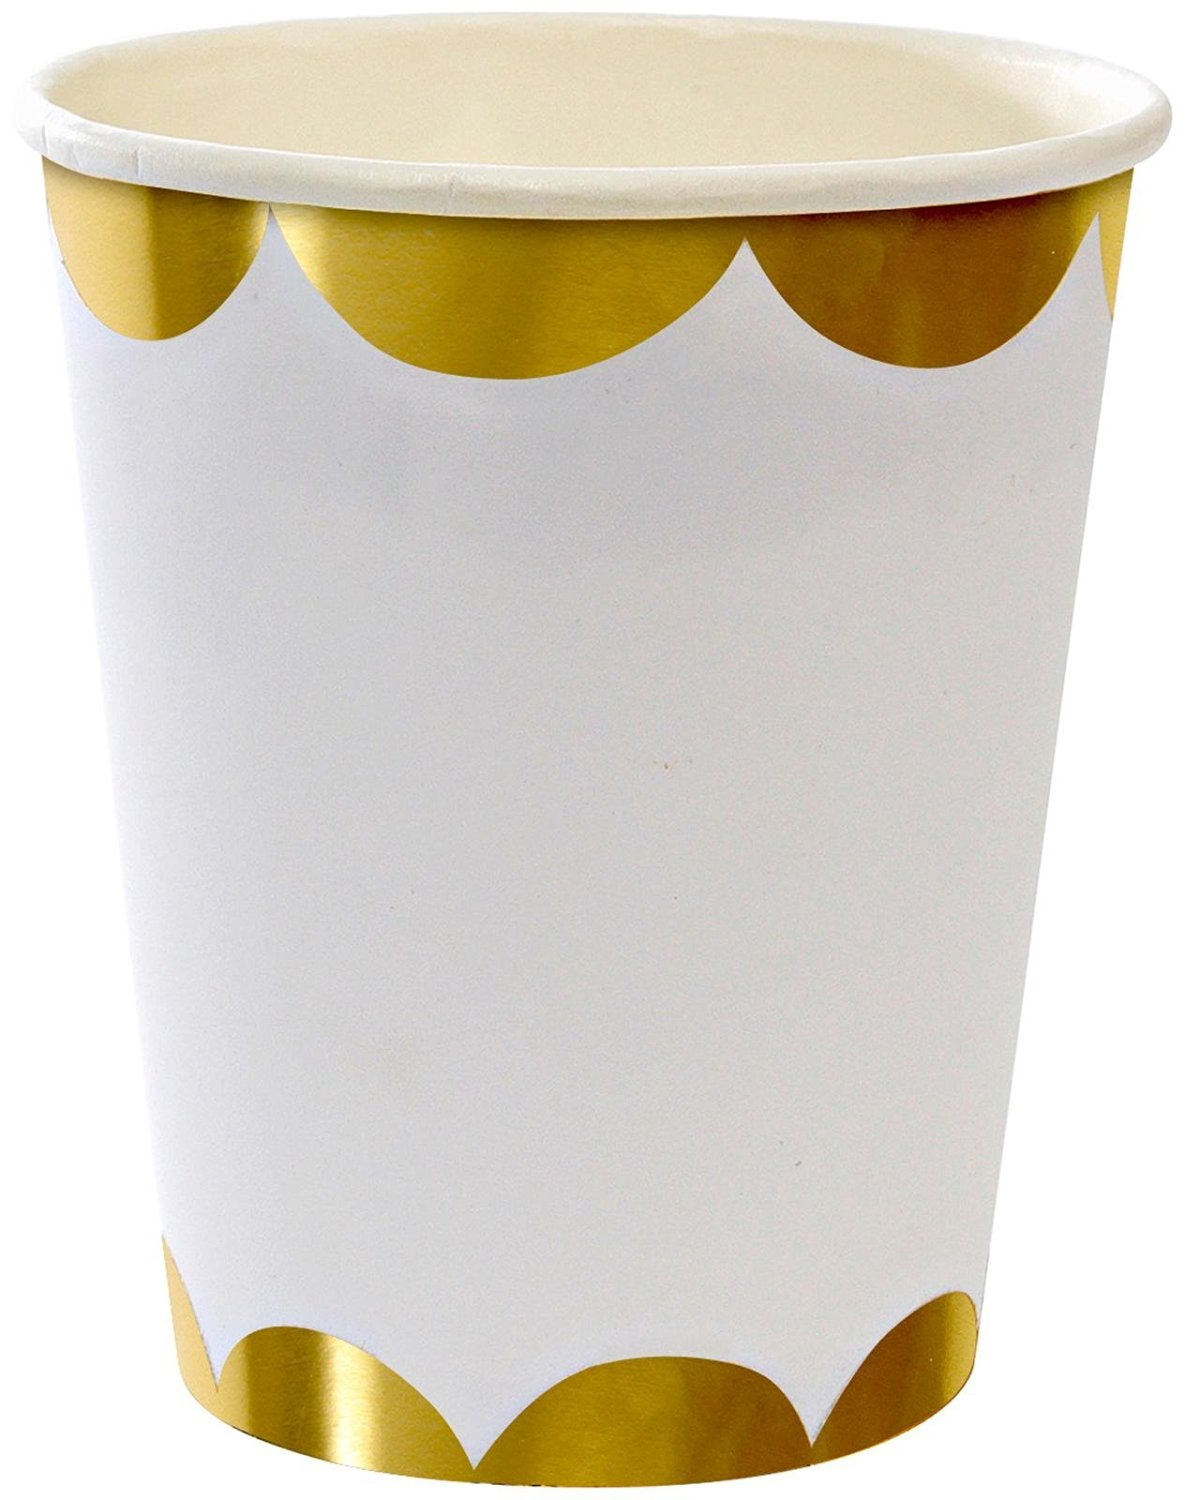 Who says paper cups have to be boring?